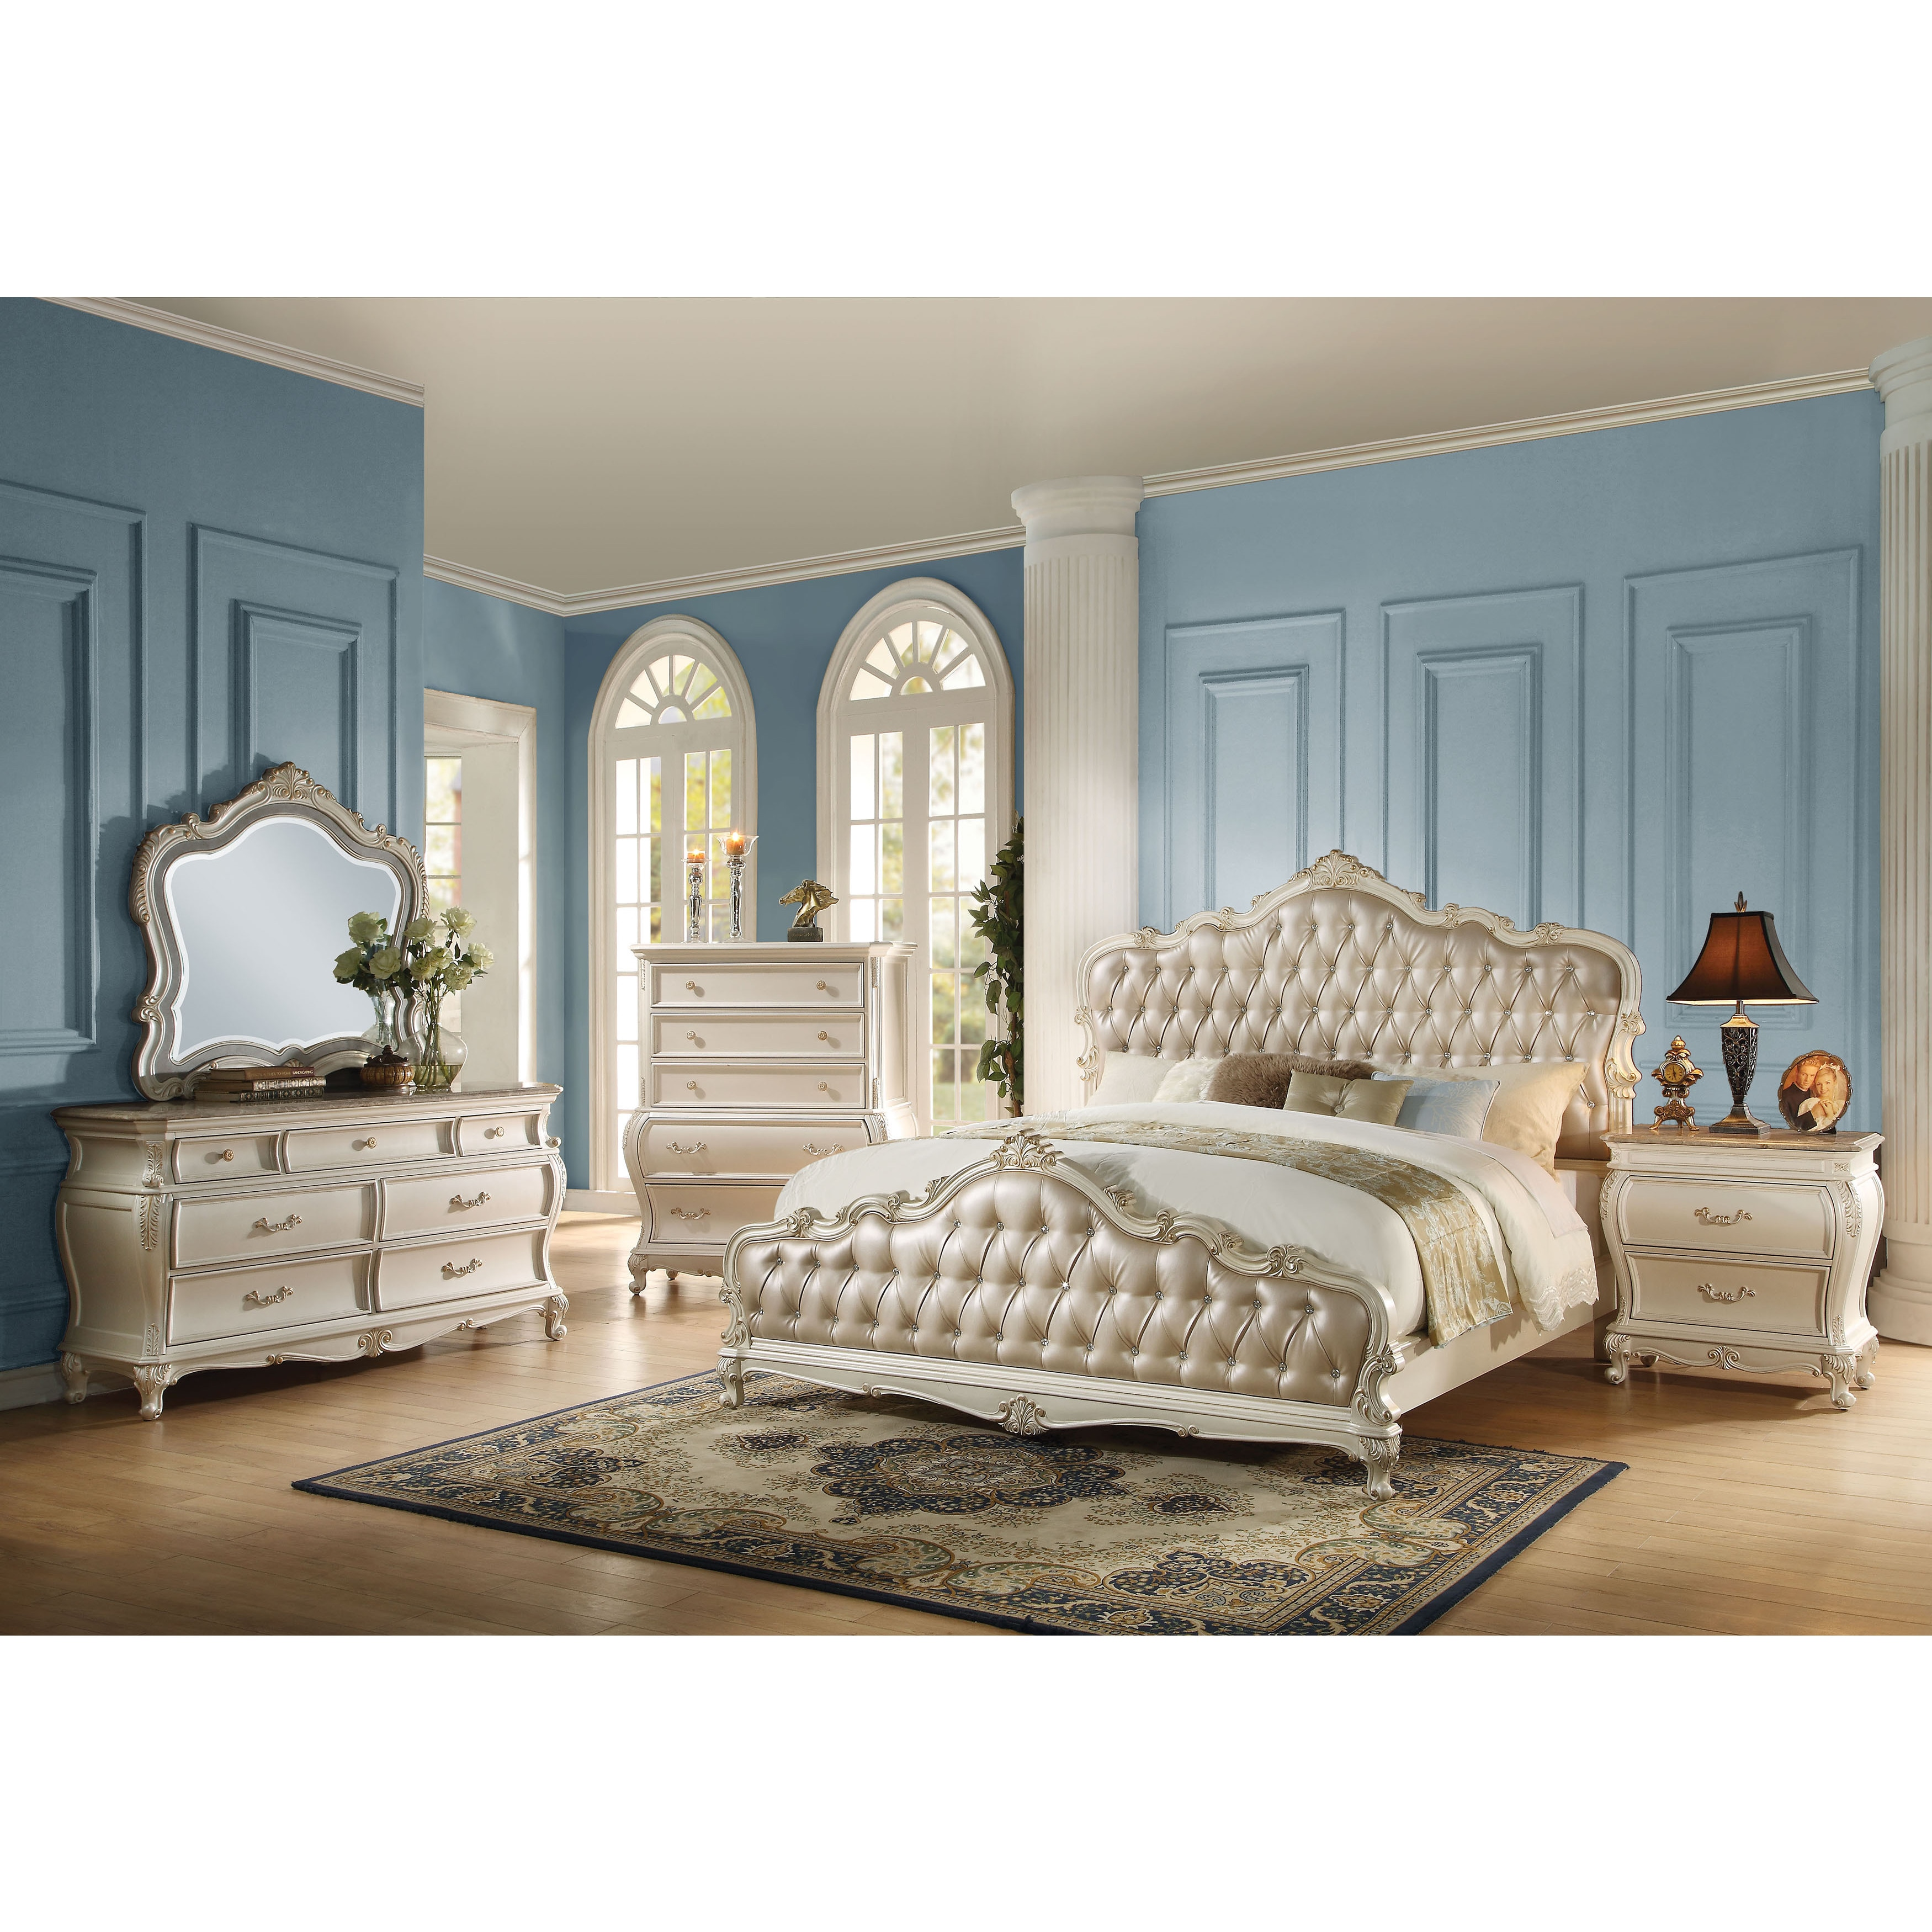 Acme Furniture Chantelle 4 Piece Bedroom Set, Rose Gold PU Leather With  Pearl White Finish   Free Shipping Today   Overstock   20756105